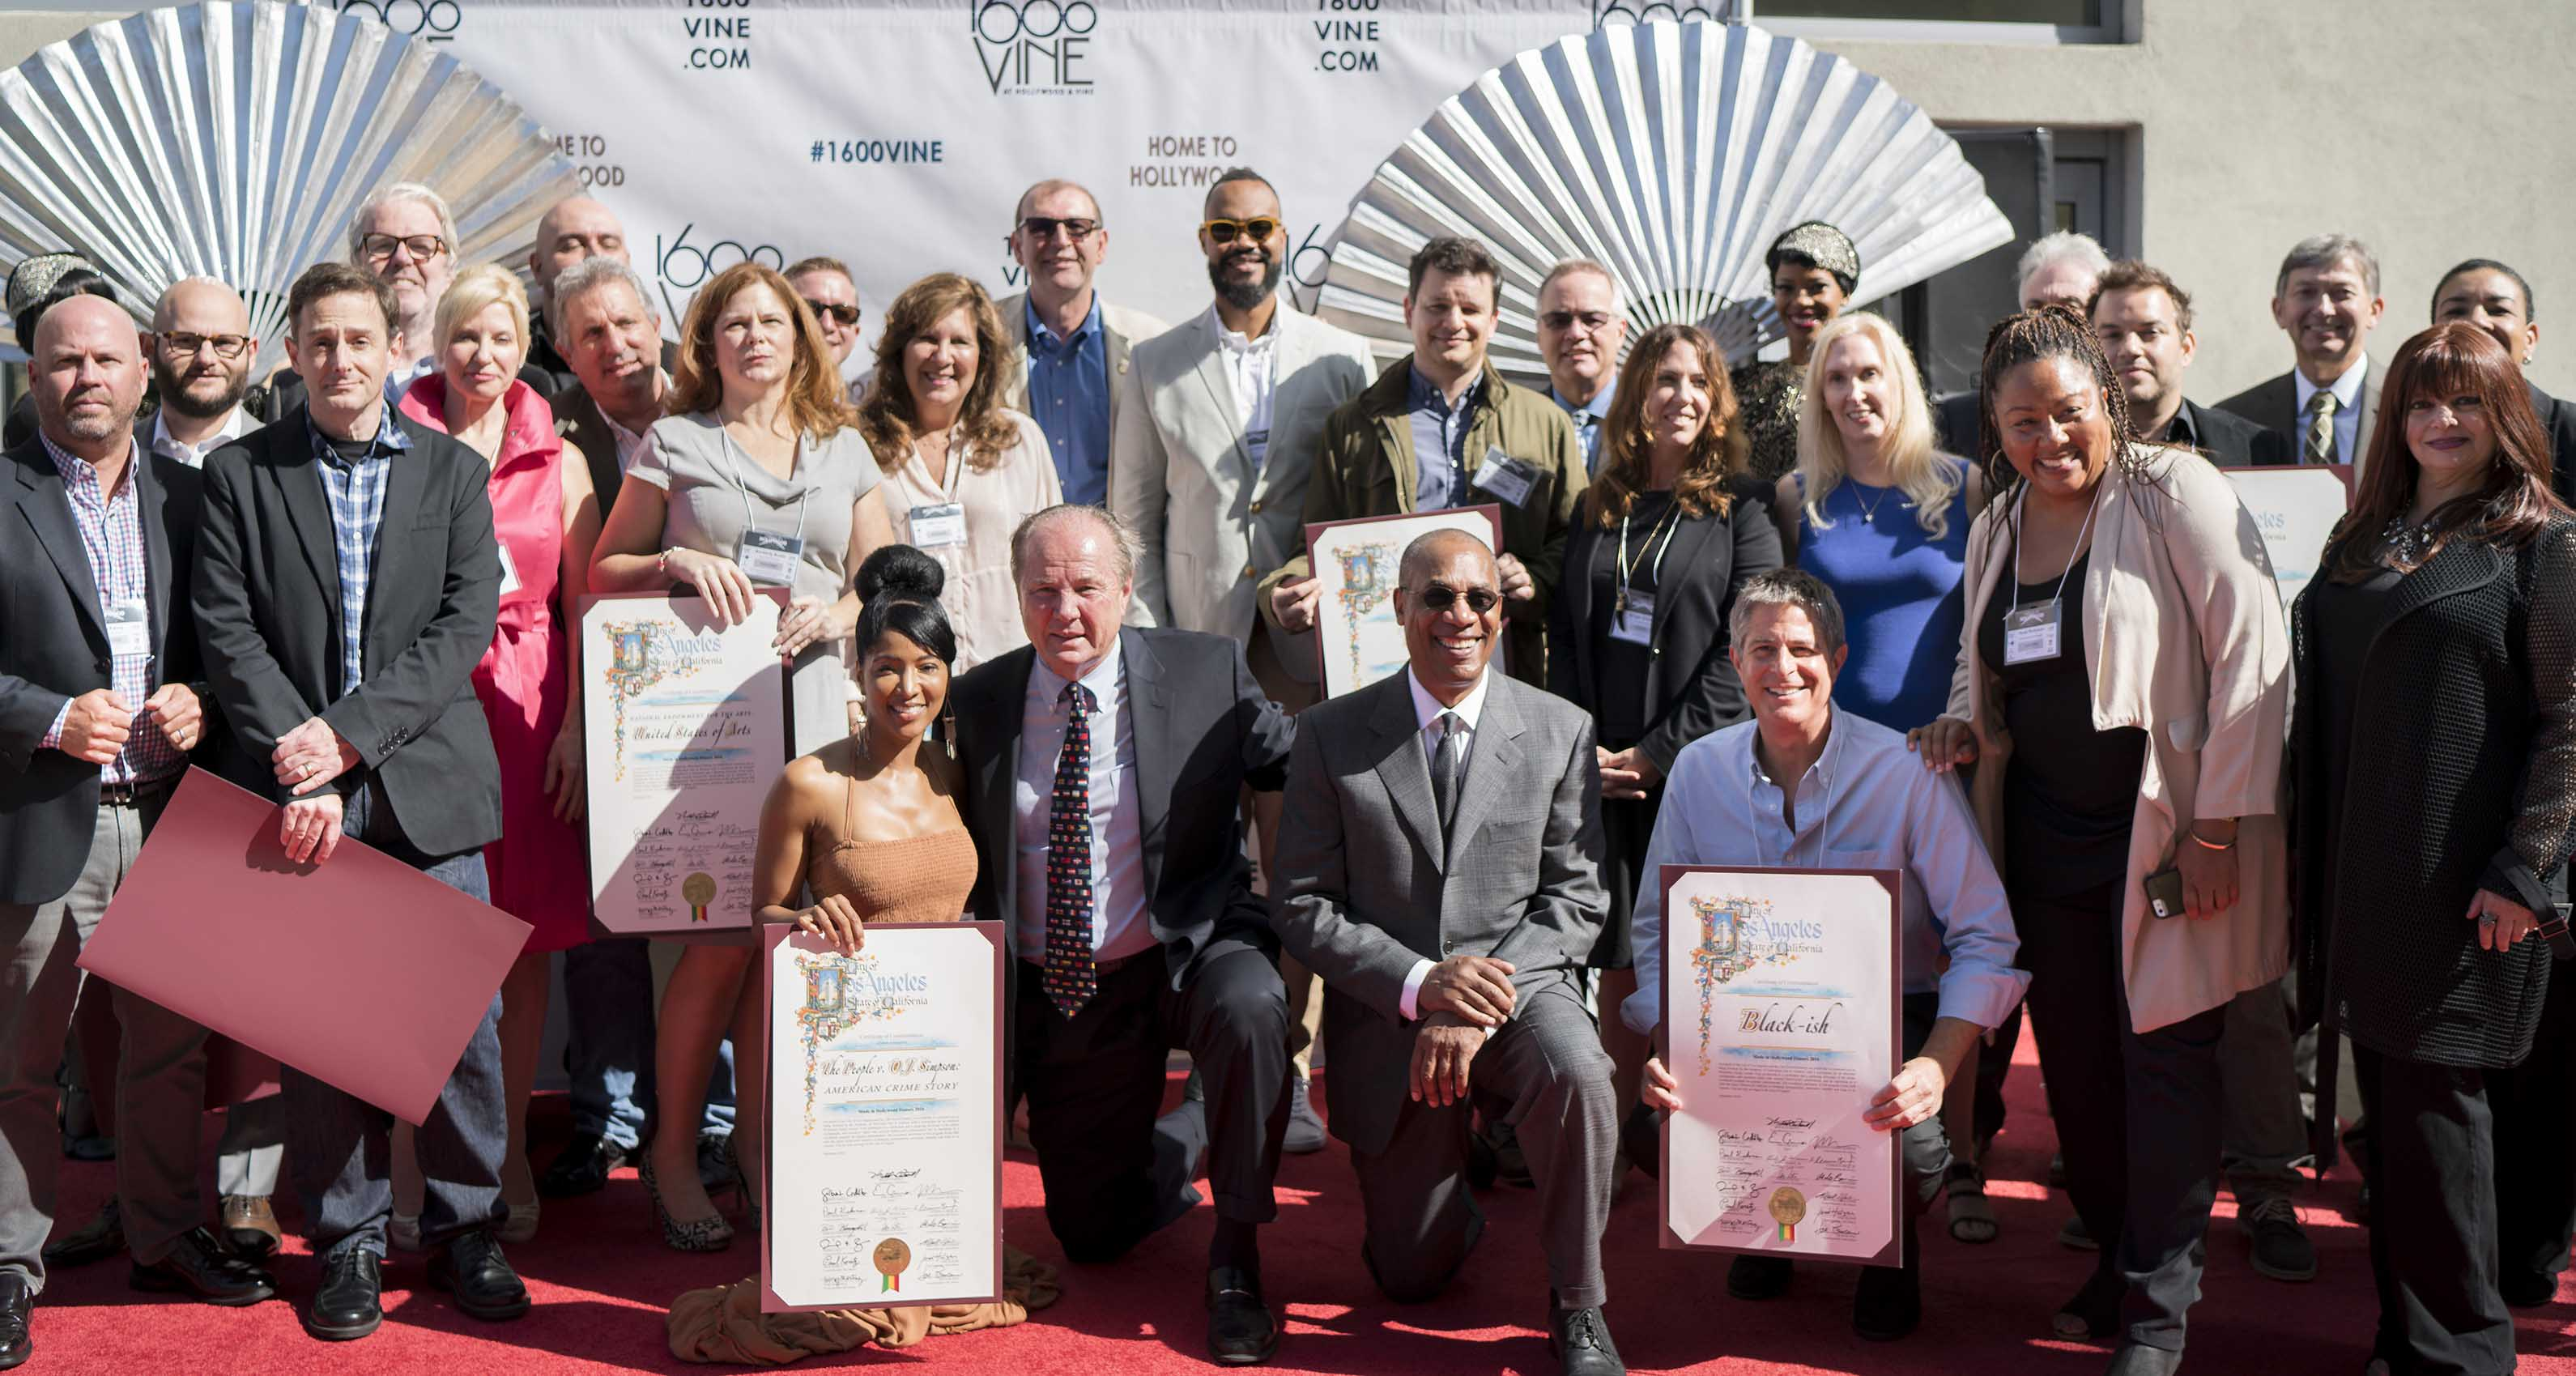 Former Los Angeles City Councilman Tom LaBonge and host Joe Morton joined by 2016 honorees. Photo by Riley Jamison.